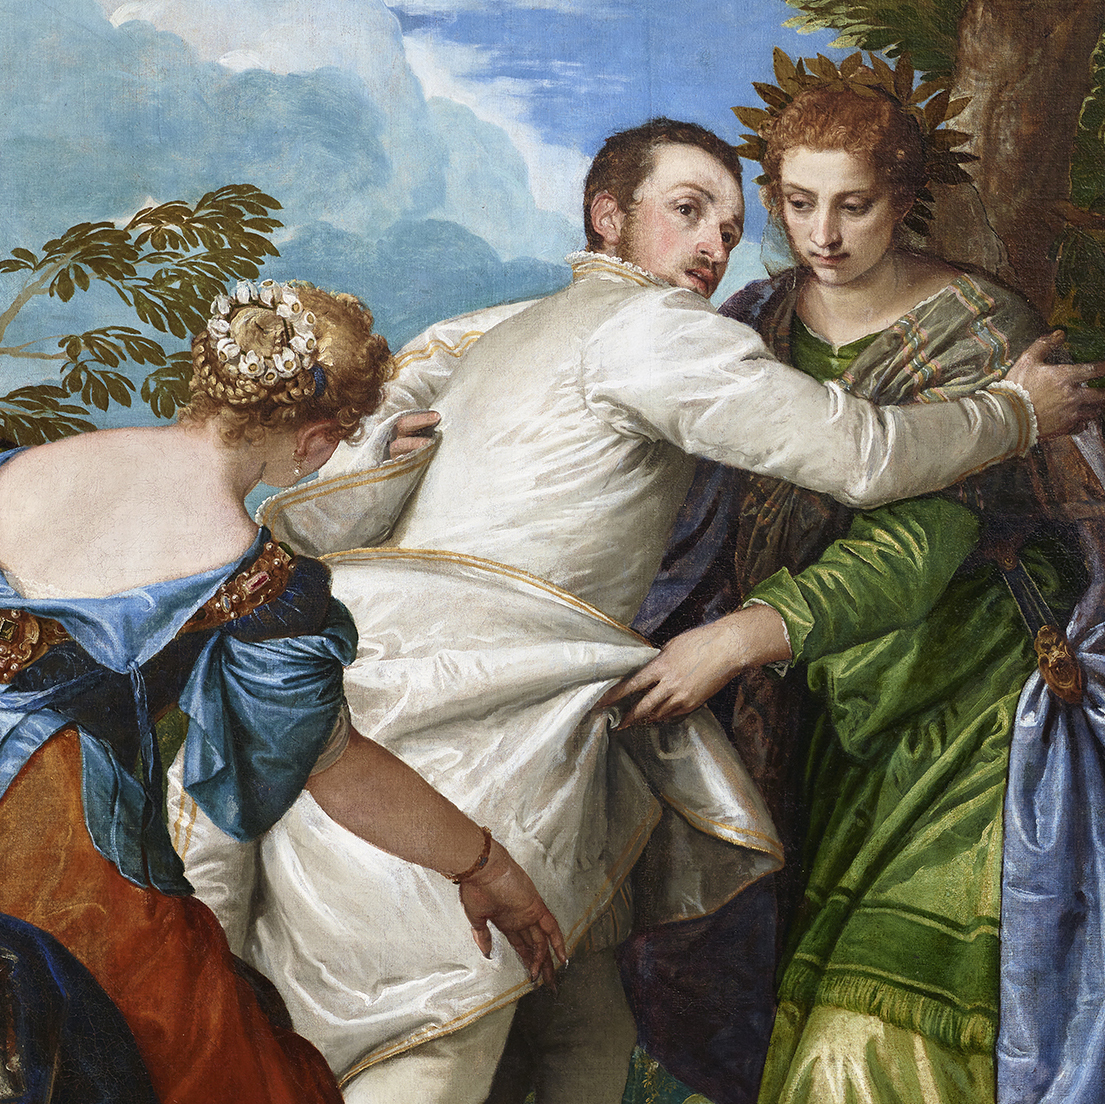 Set against a cloudy blue sky, Hercules (center) encounters two women in colorful robes, representing Virtue and Vice